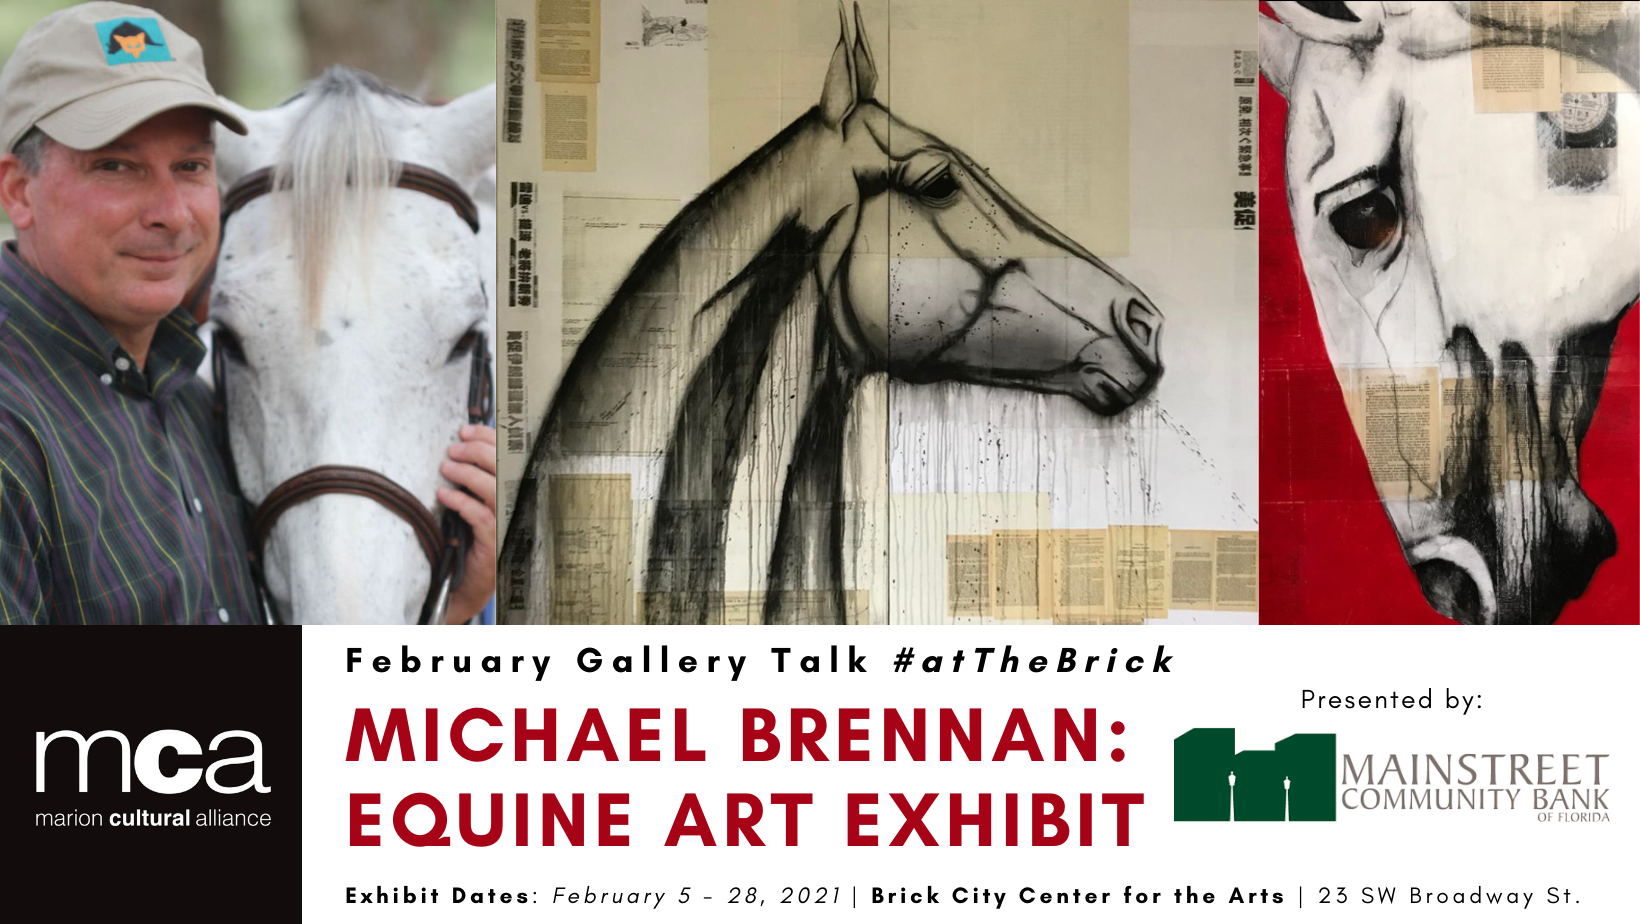 February Gallery Talk with Michael Brennan image